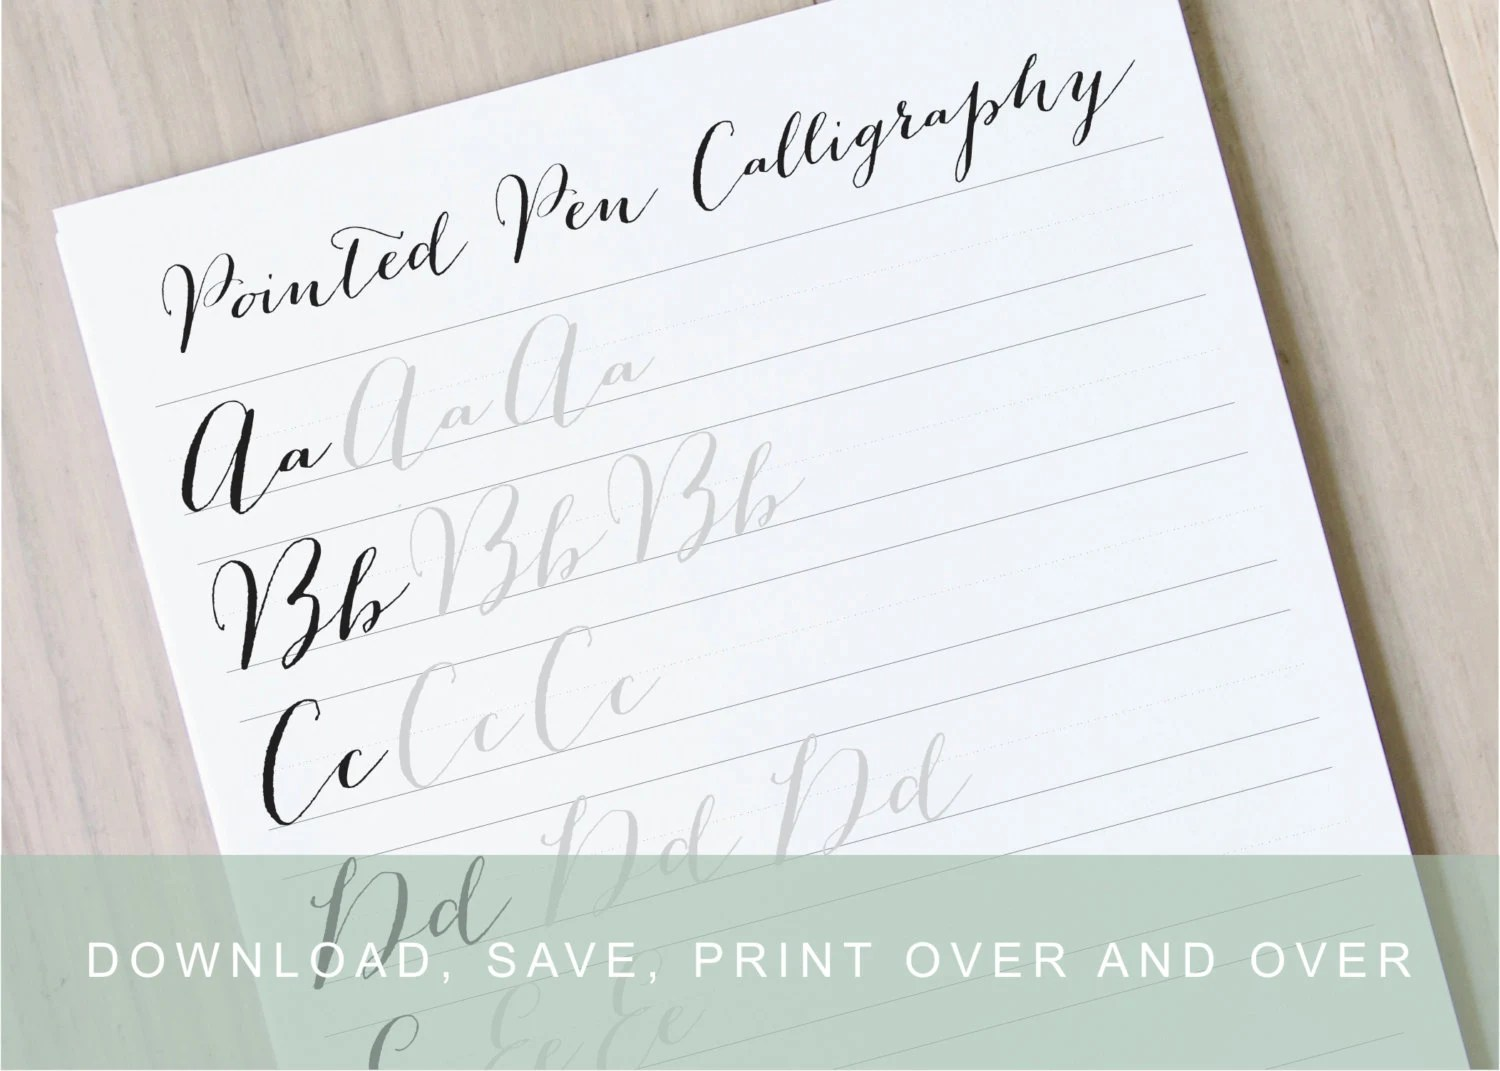 Pointed Pen Calligraphy Worksheet Bouncy Modern